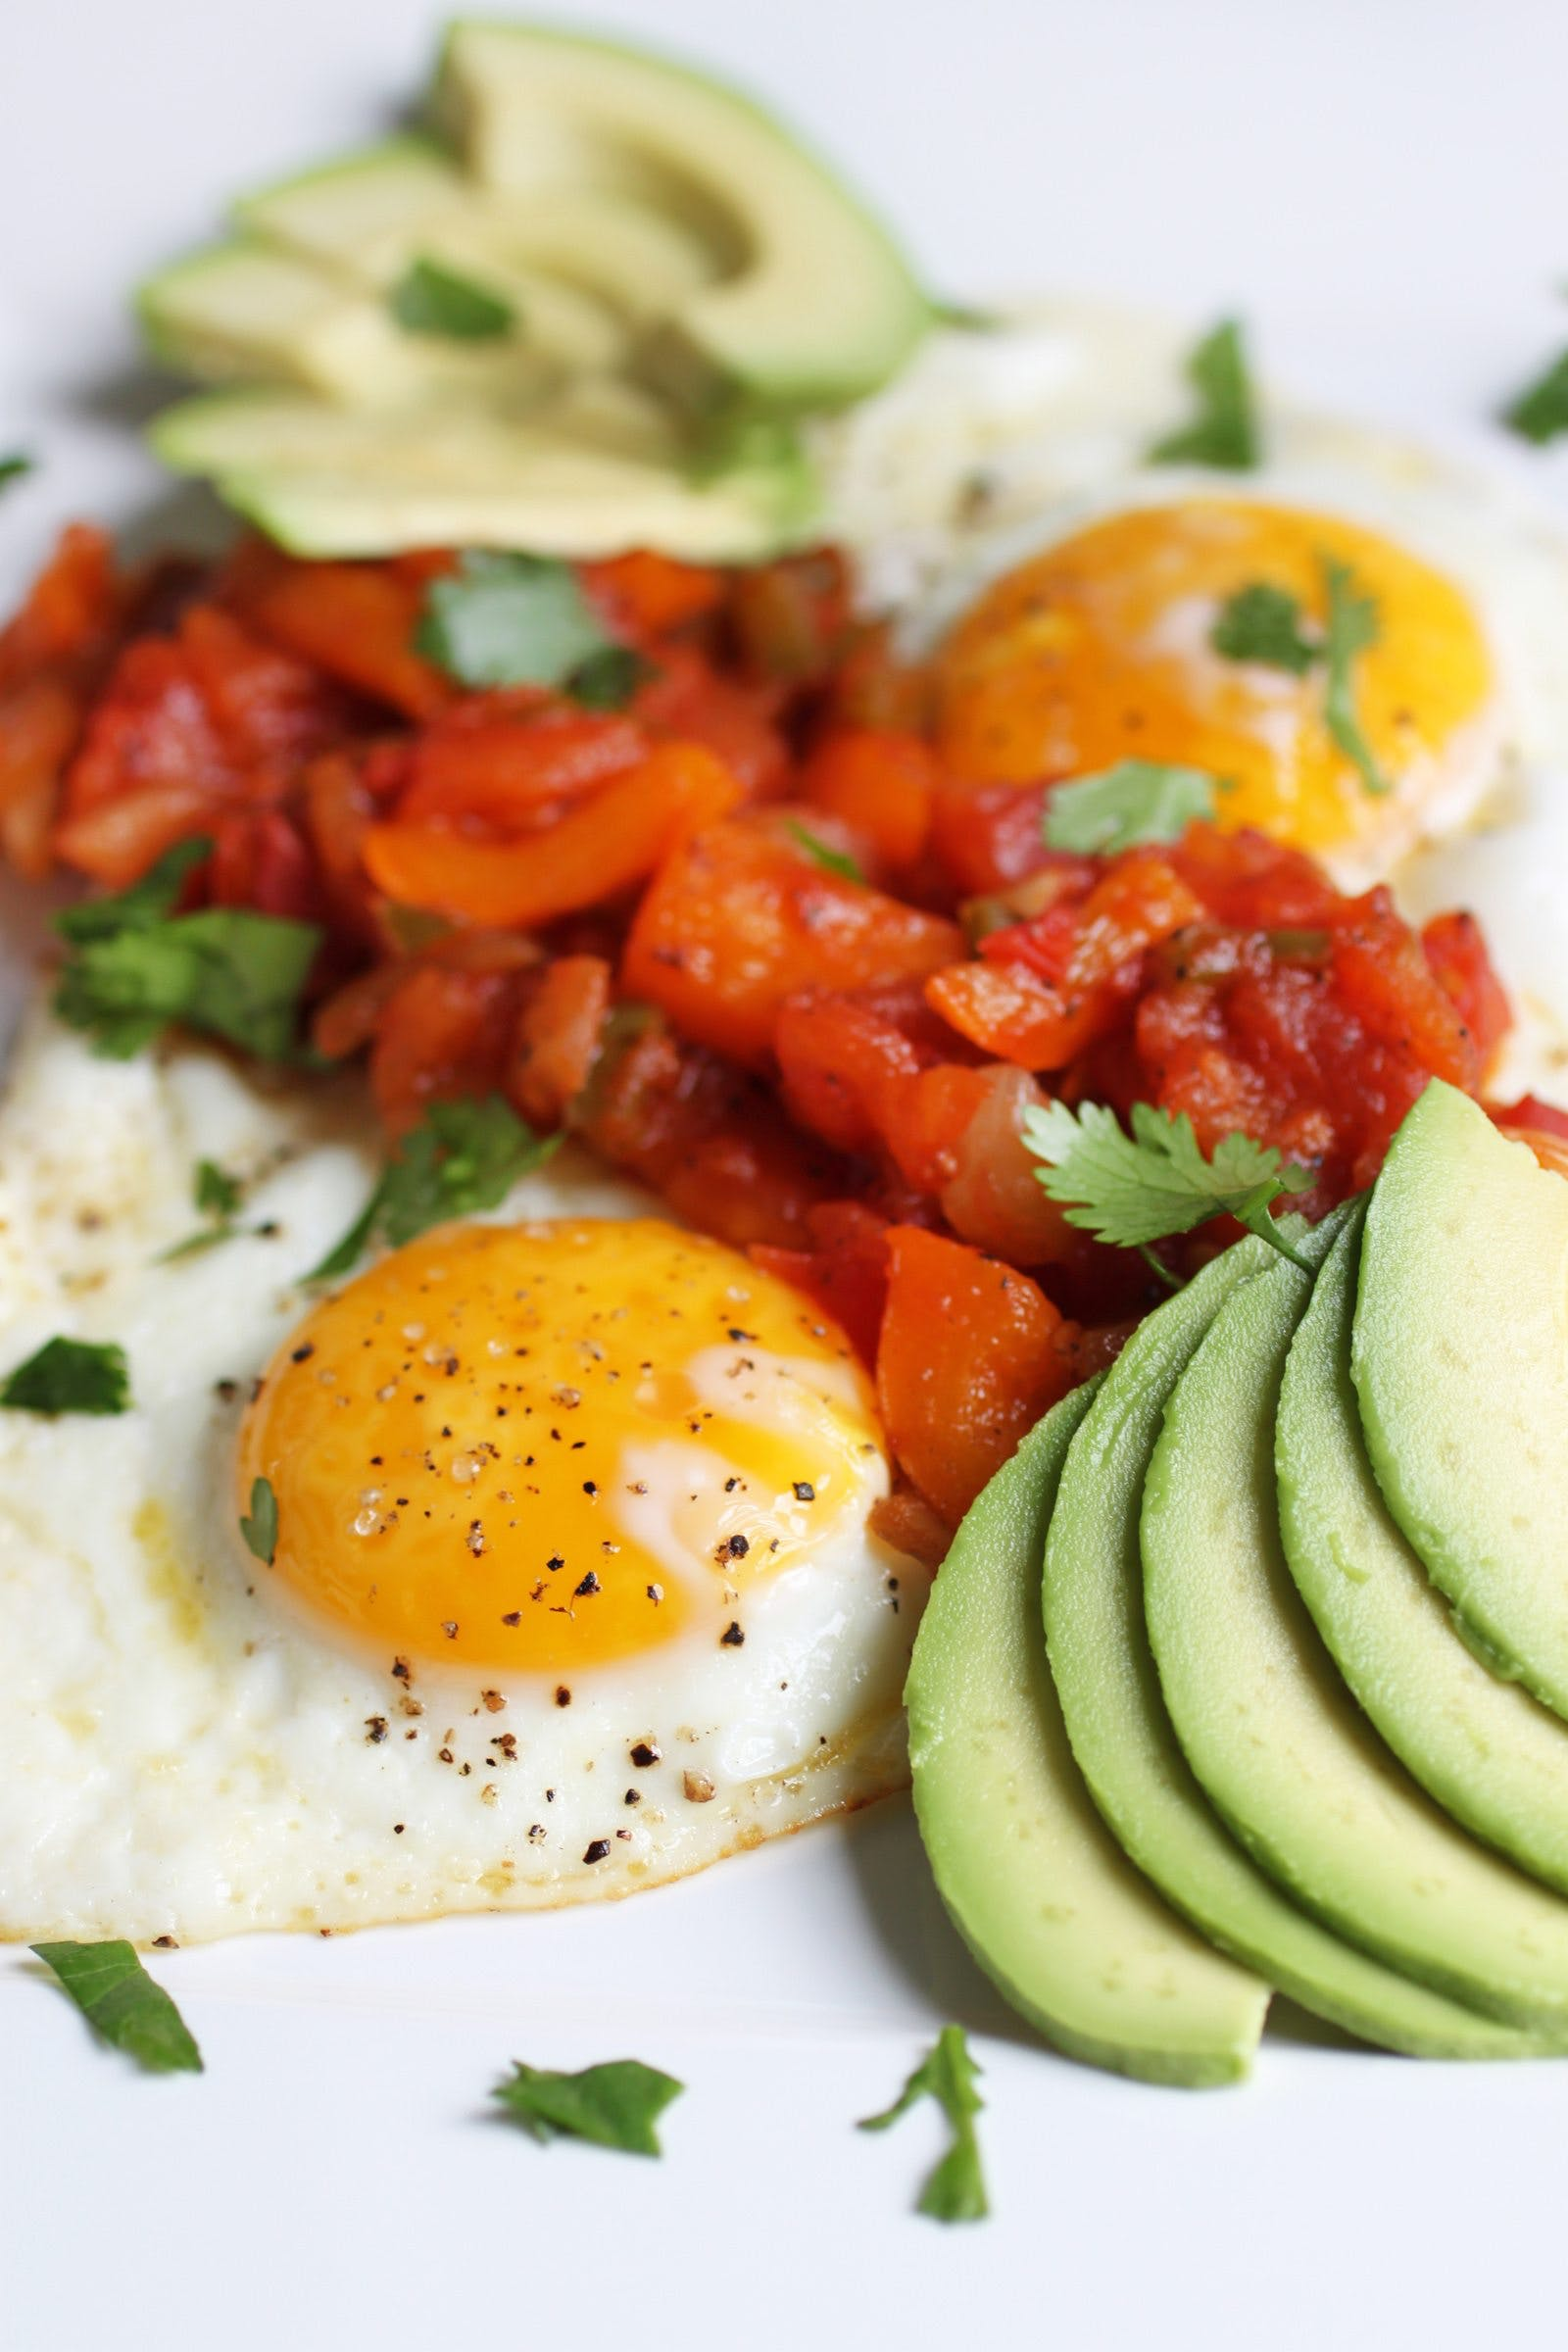 Low-carb huevos rancheros<br />(Breakfast)